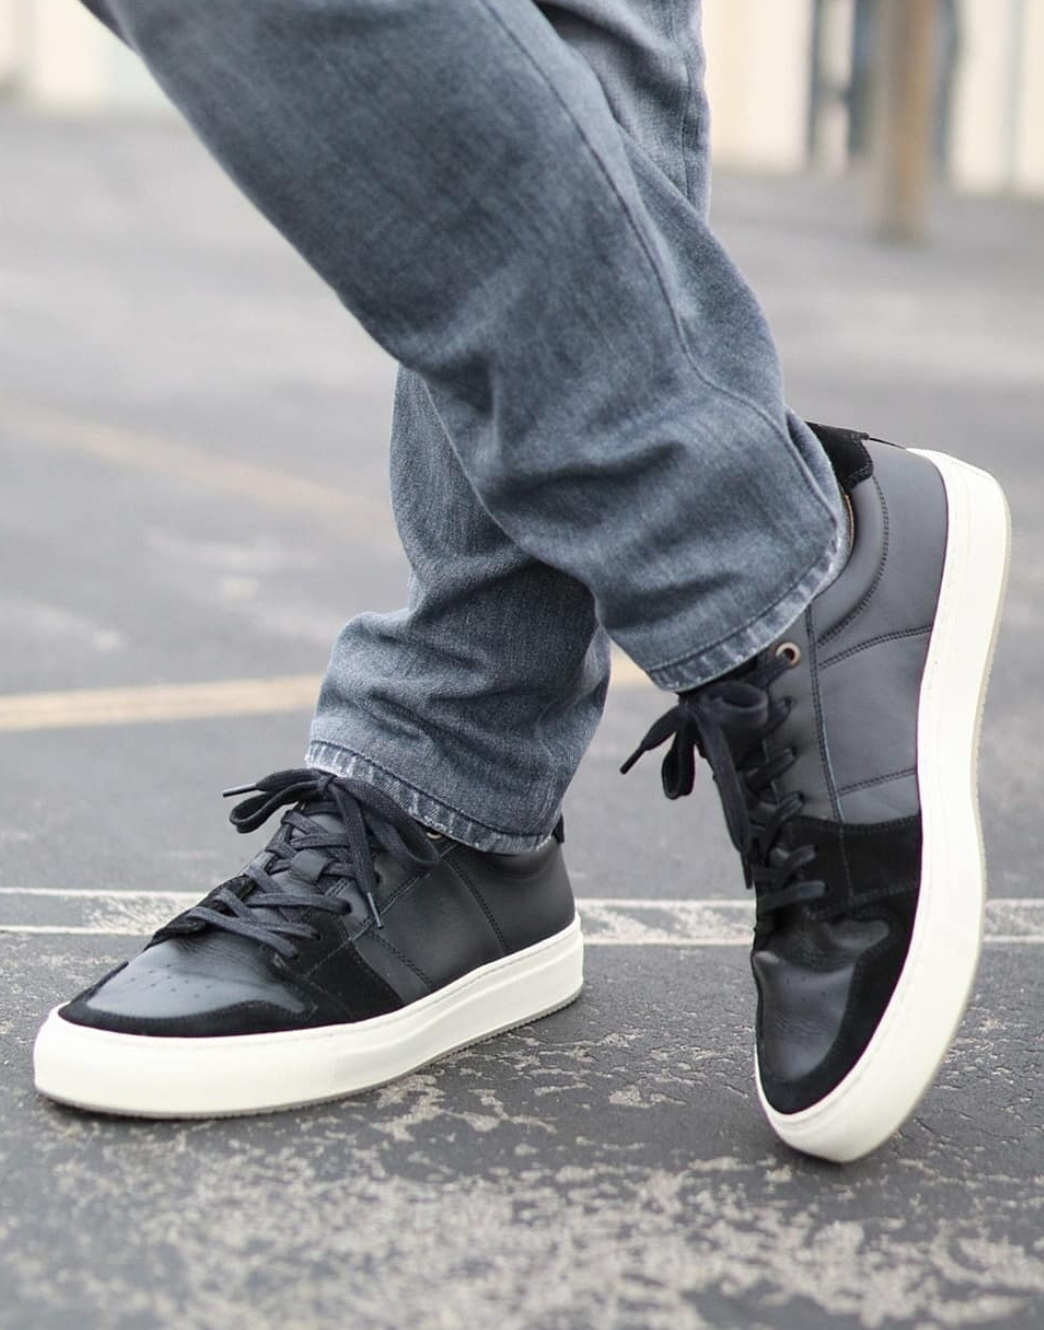 Black and white minimal sneakers